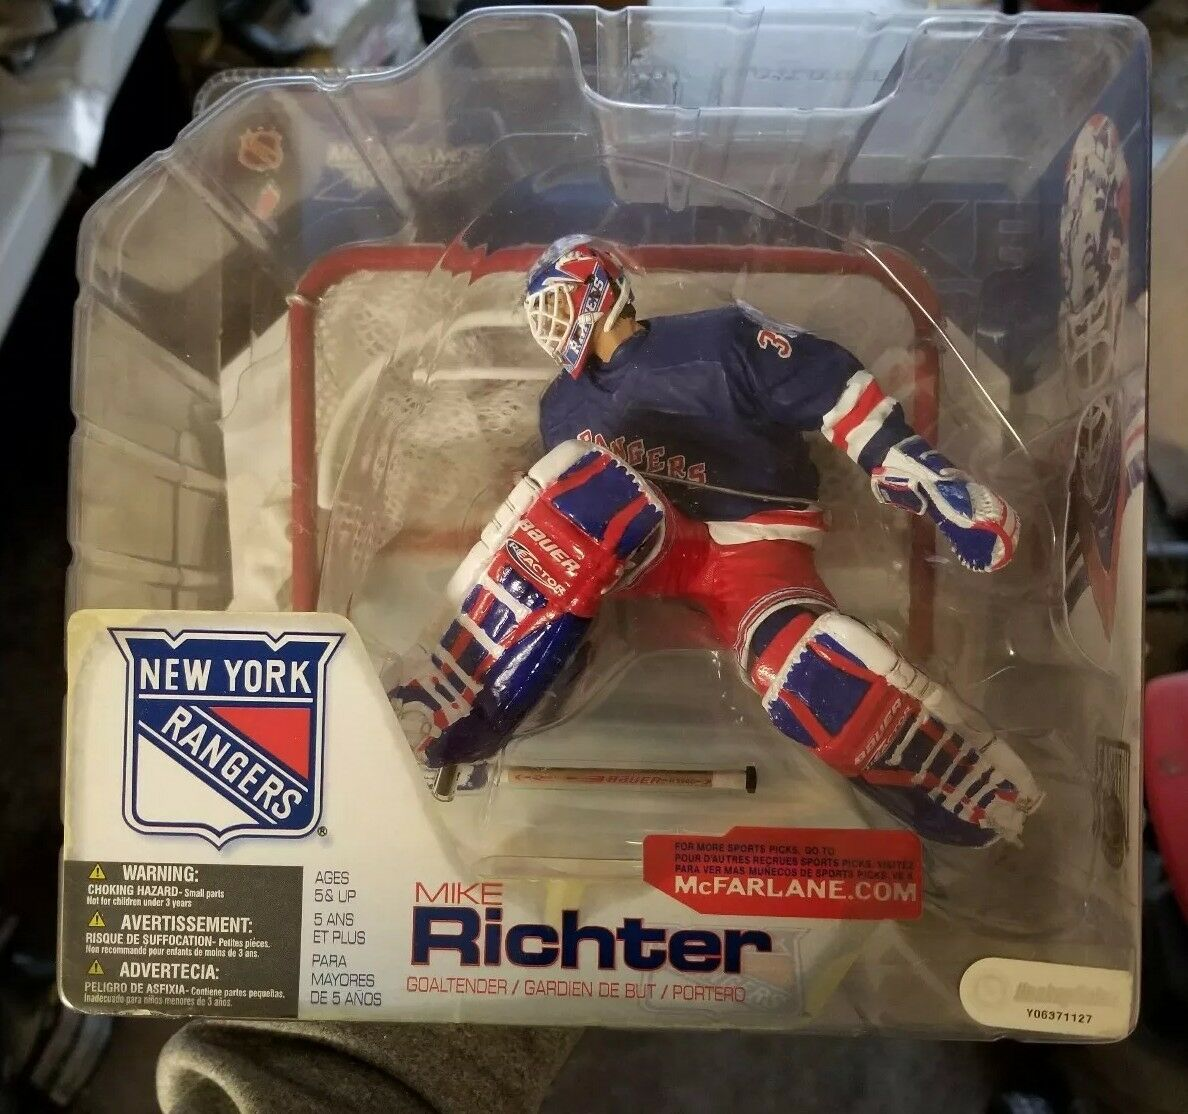 MCFARLANE NHL 4 MIKE RICHTER  CHASE VARIANT blueE JERSEY NY RANGERS  Rare var